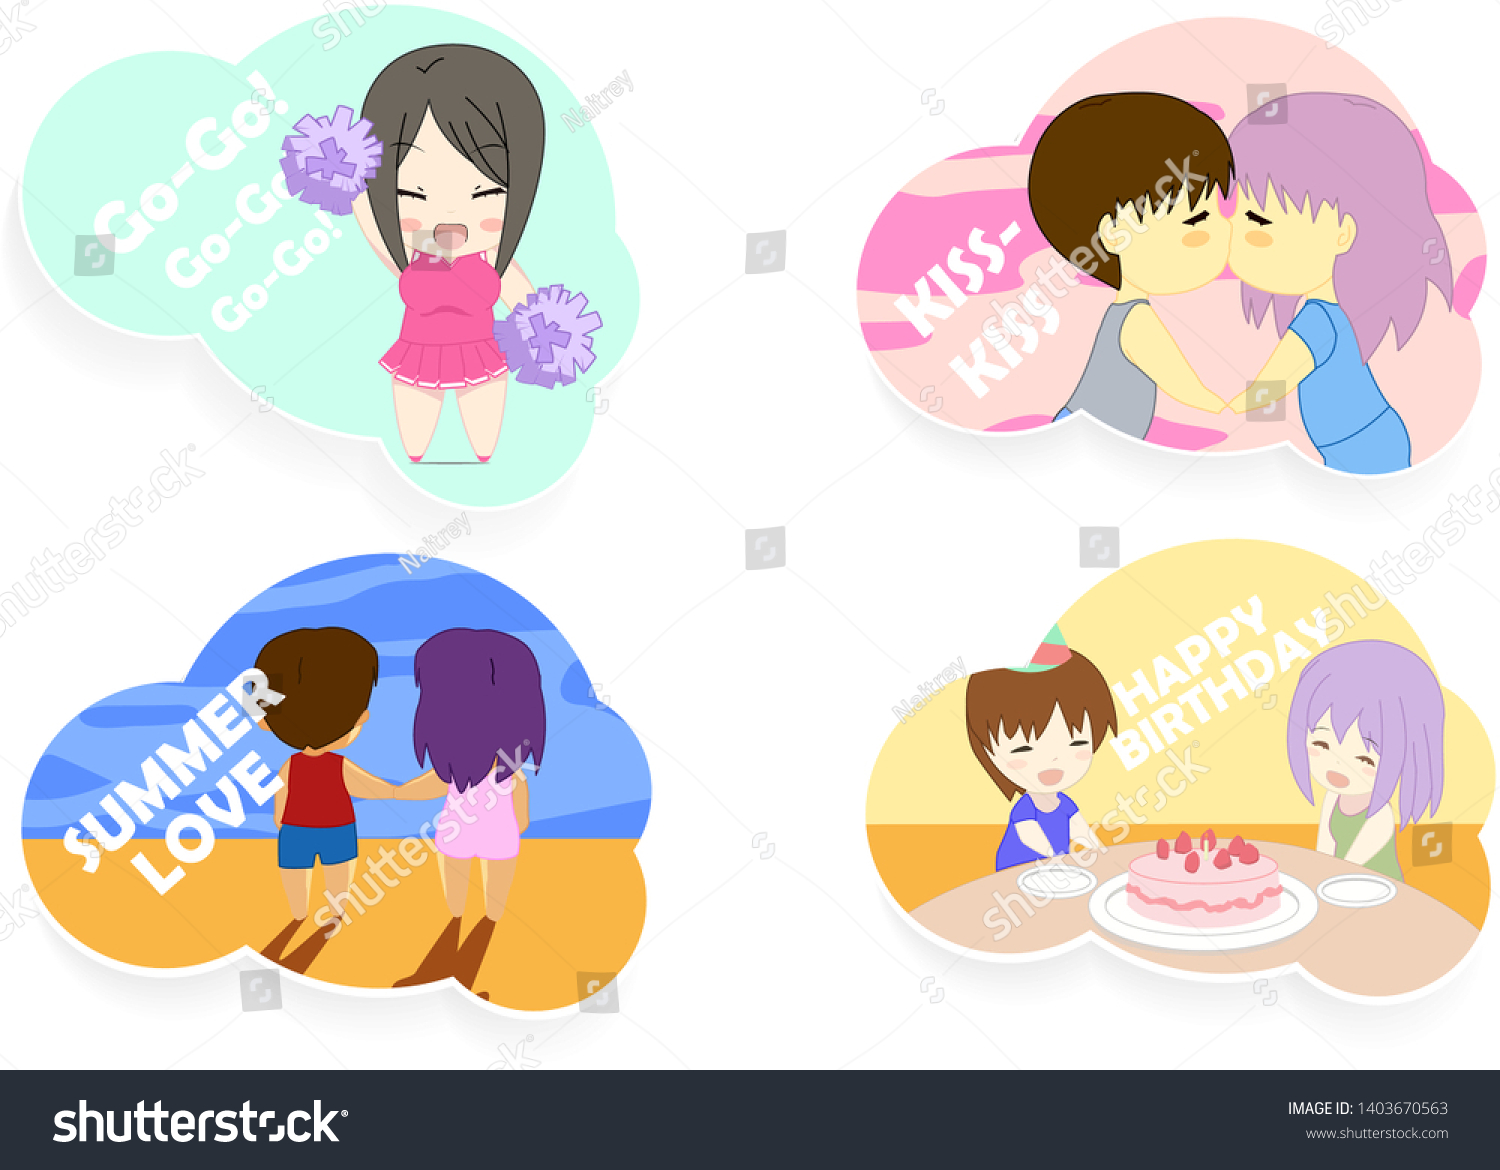 Cute Vector Illustration Anime Girl Boy Stock Vector Royalty Free